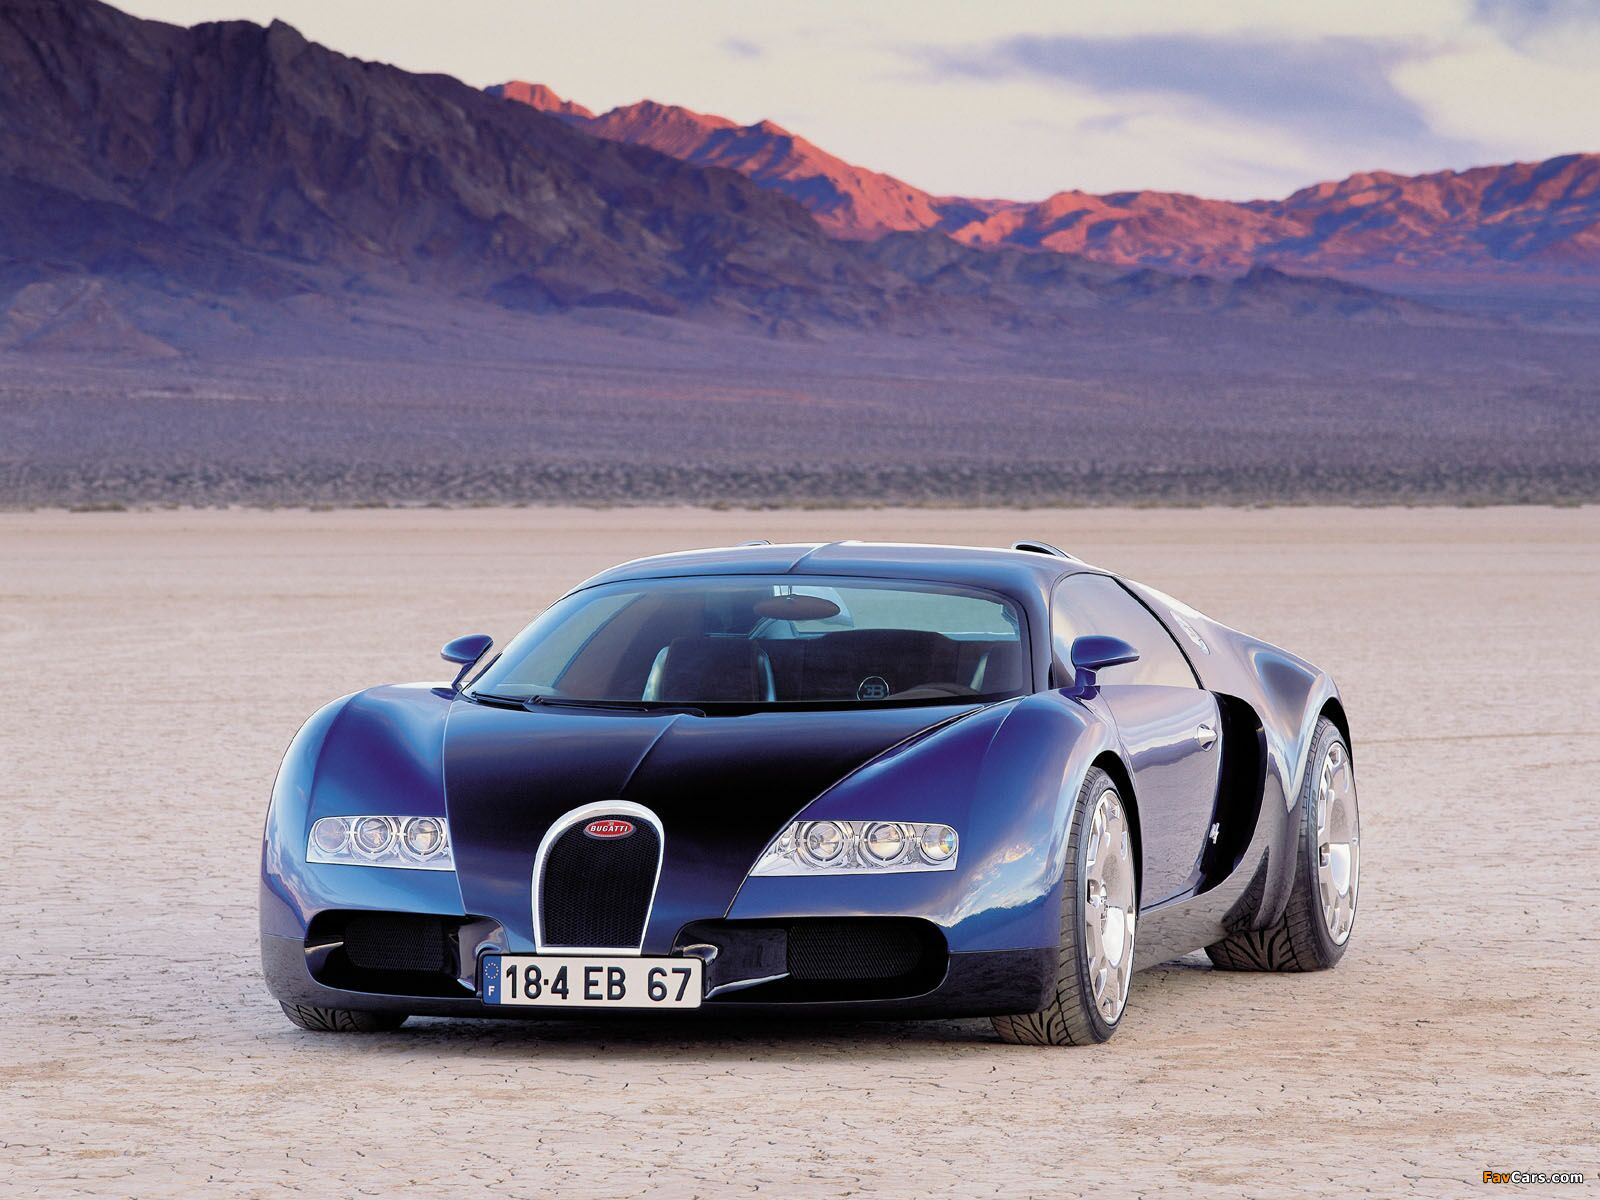 Wallpapers Of Bugatti Eb 18 4 Veyron Concept 1999 1600x1200 HD Wallpapers Download free images and photos [musssic.tk]